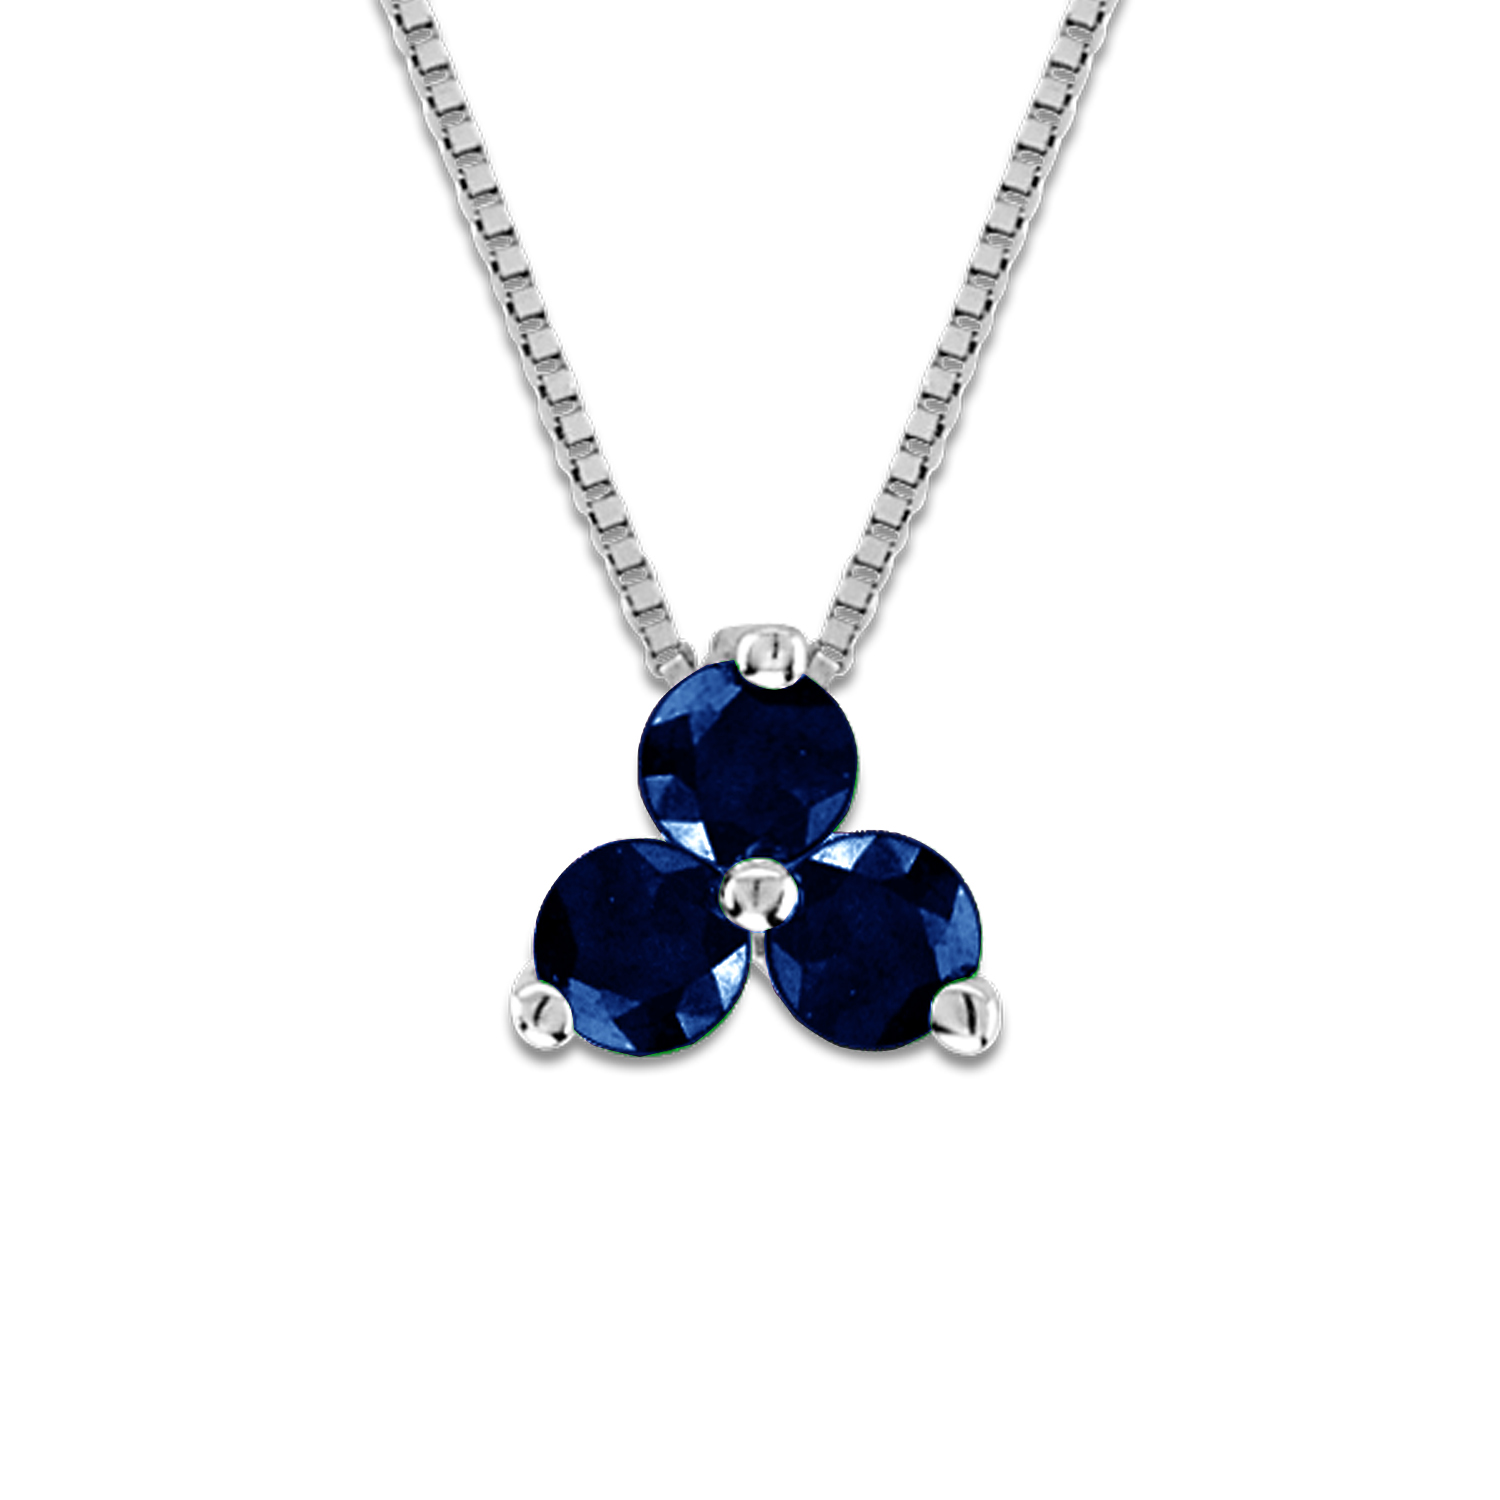 View 0.30cttw Sapphire Three Stone Pendant in 14k Gold